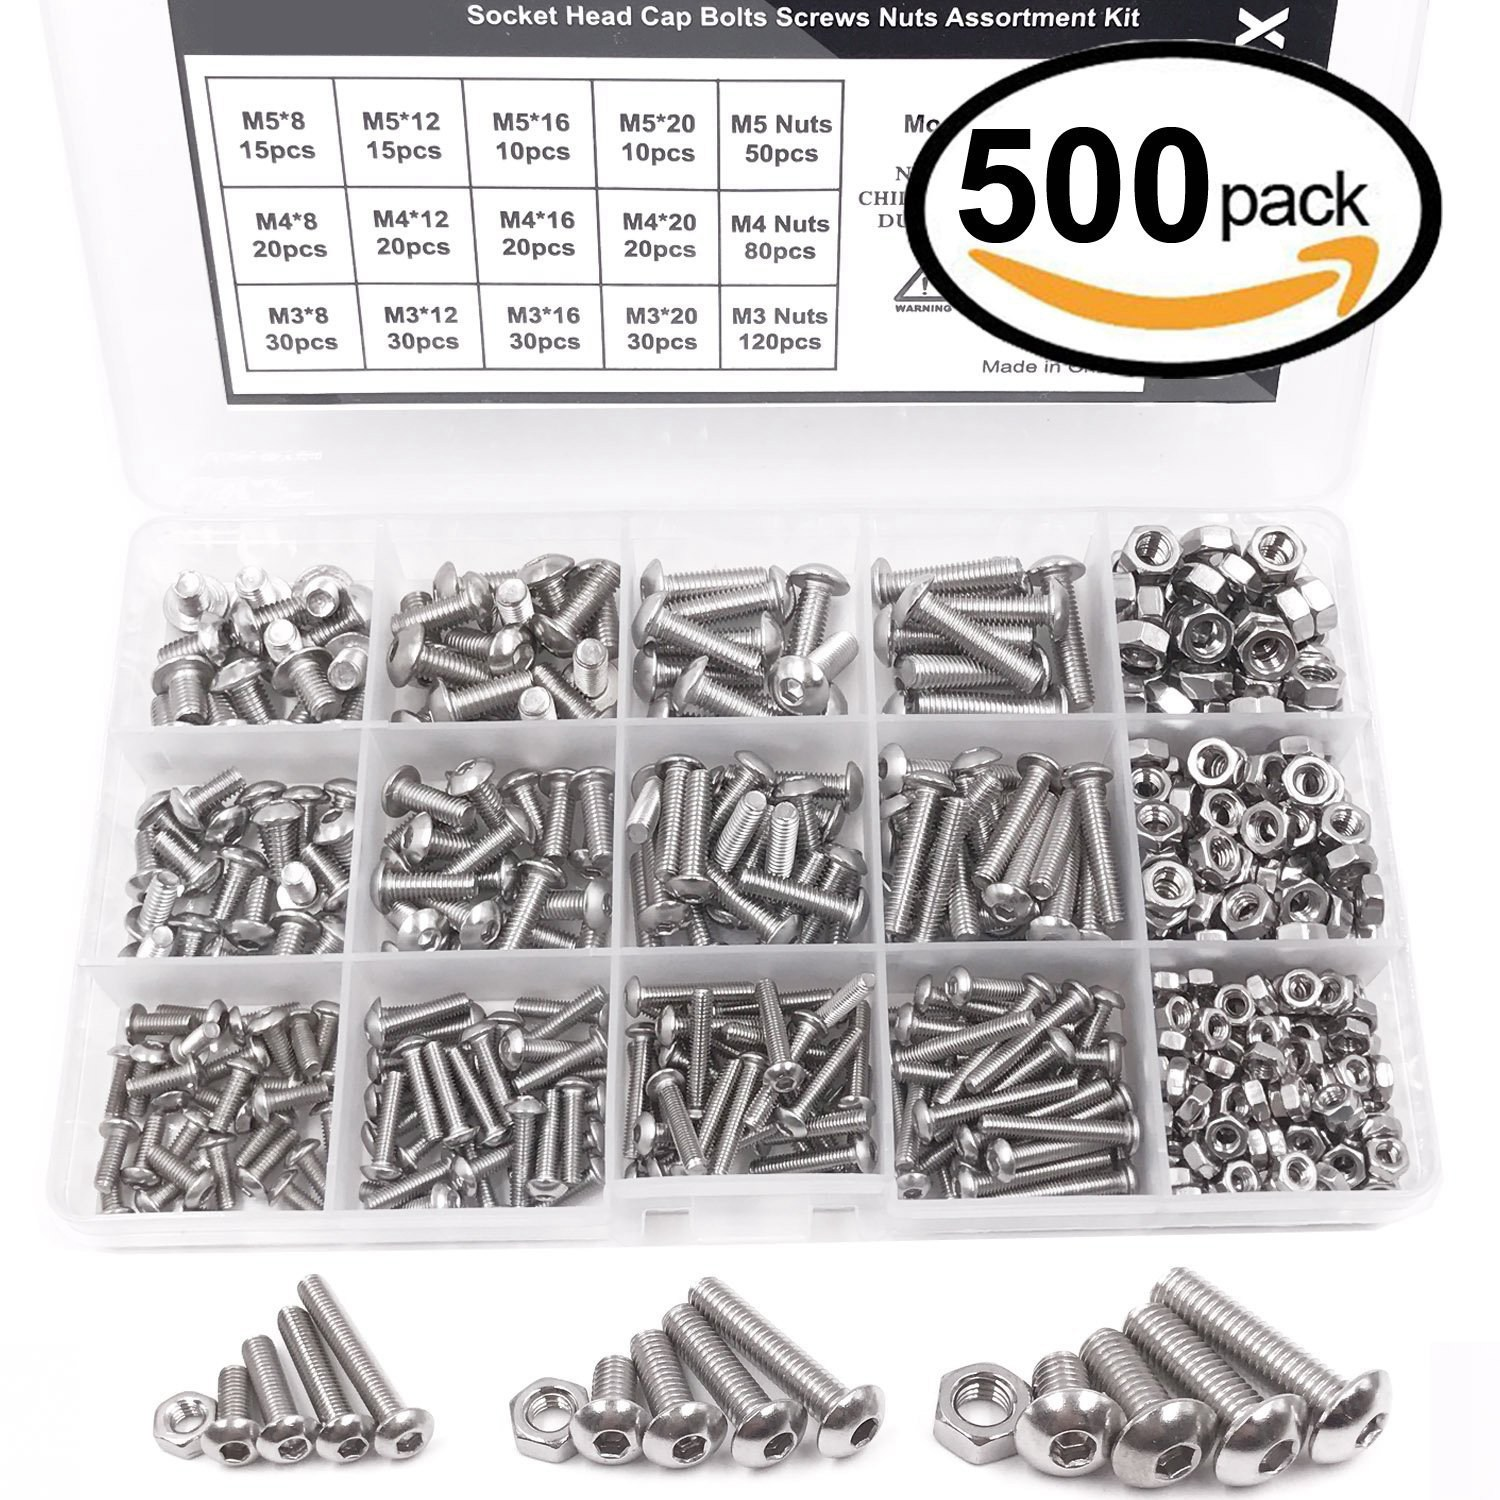 wsfs-hot-500pcs-m3-m4-m5-a2-stainless-steel-iso7380-button-head-hex-bolts-hexagon-socket-screws-with-nuts-assortment-kit